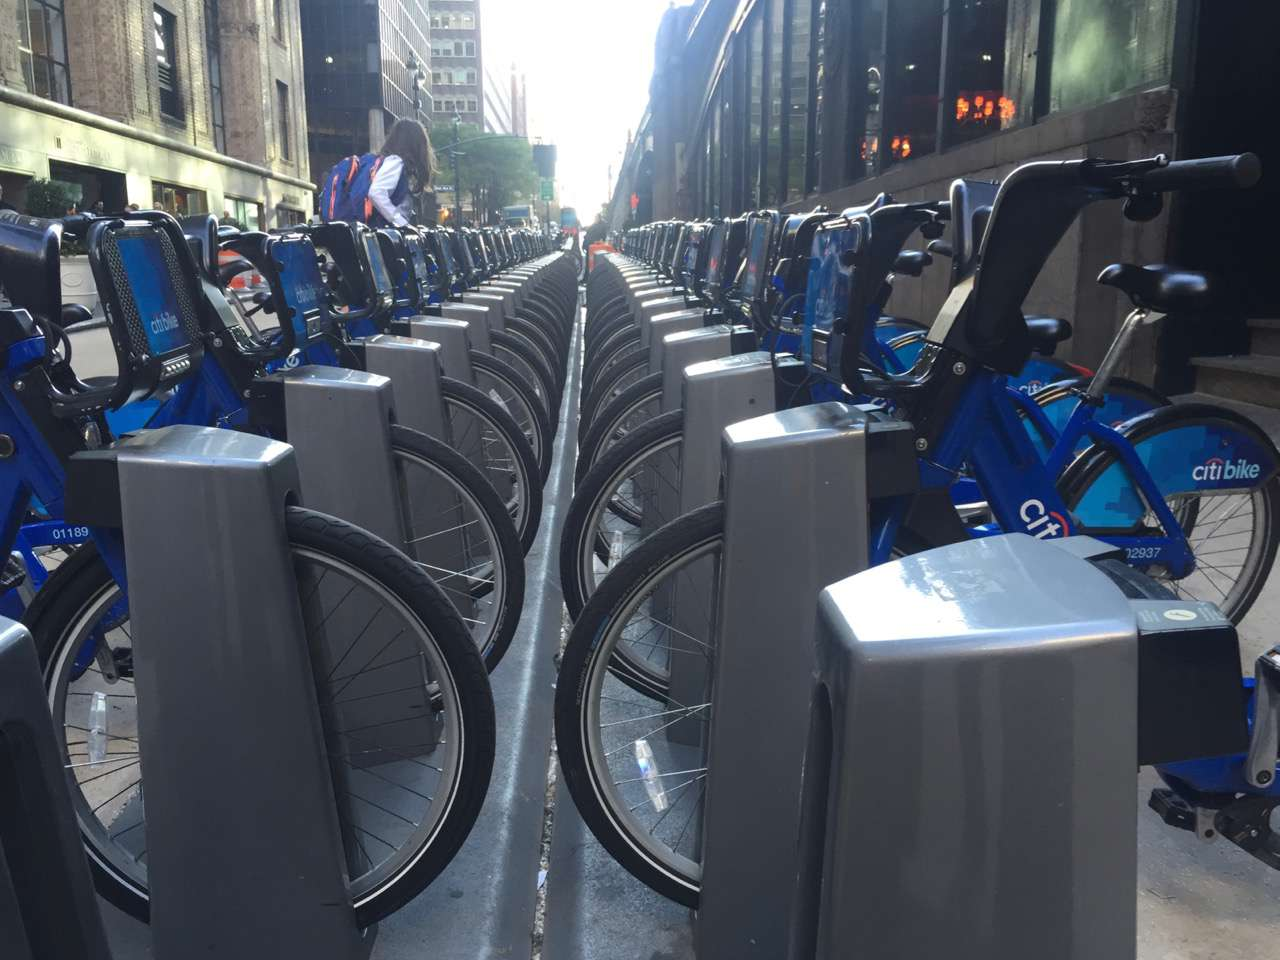 Citibikes at Grand Central